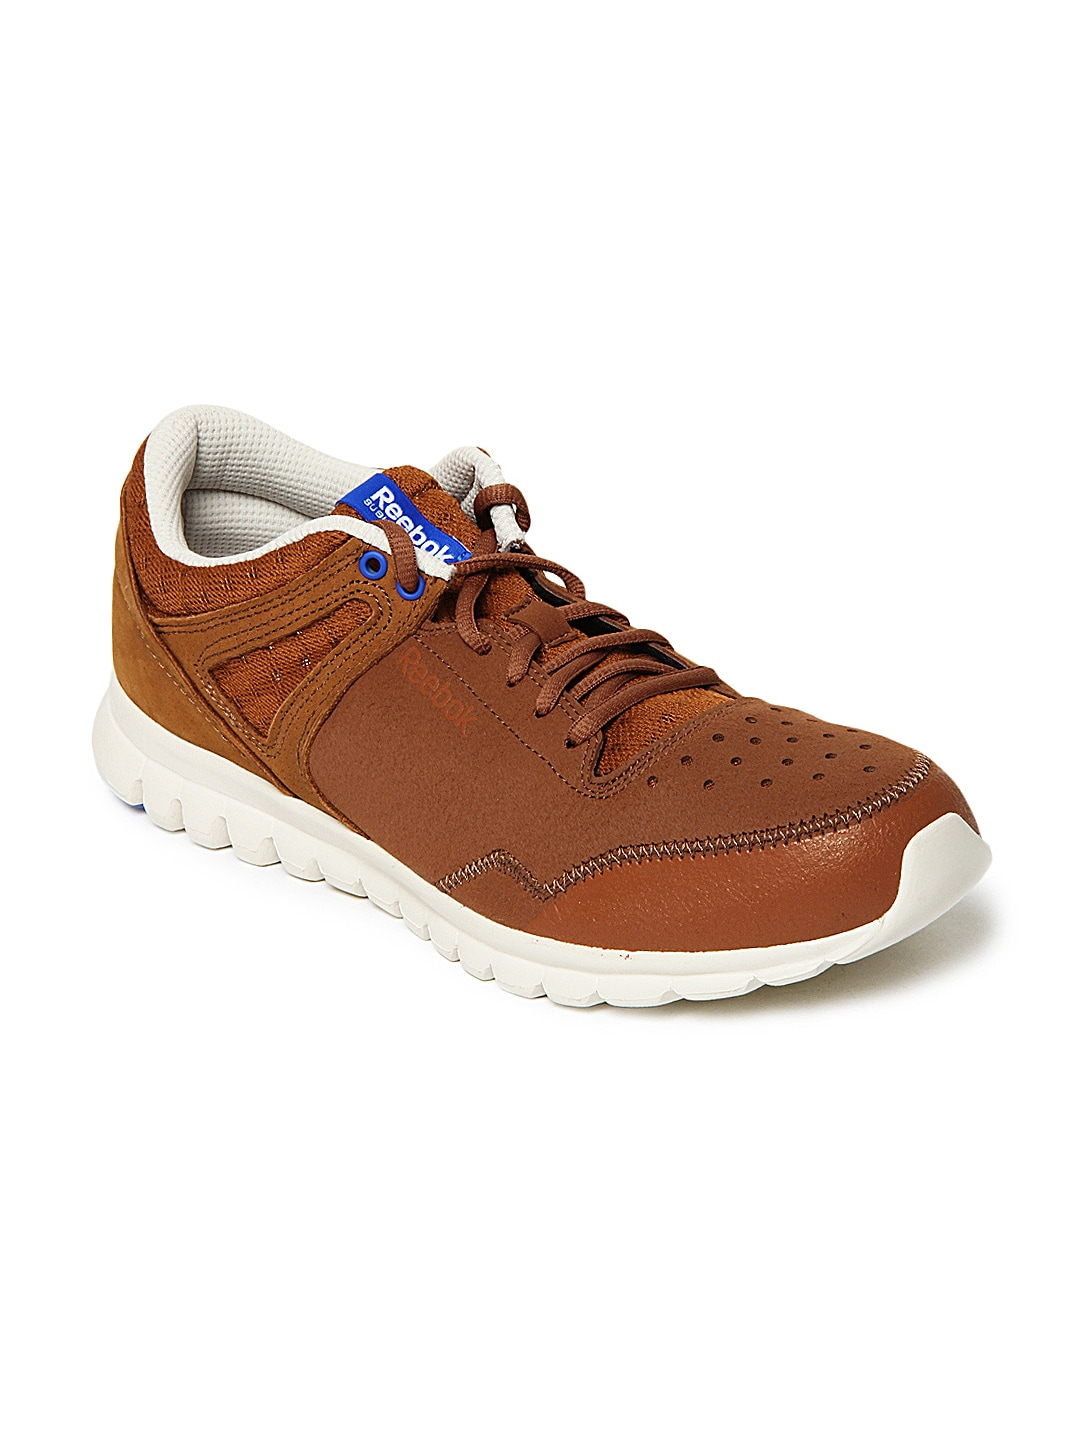 82cae6ab0471a3 Buy Reebok Classic Men Brown Sublite Summer II Casual Shoes ...